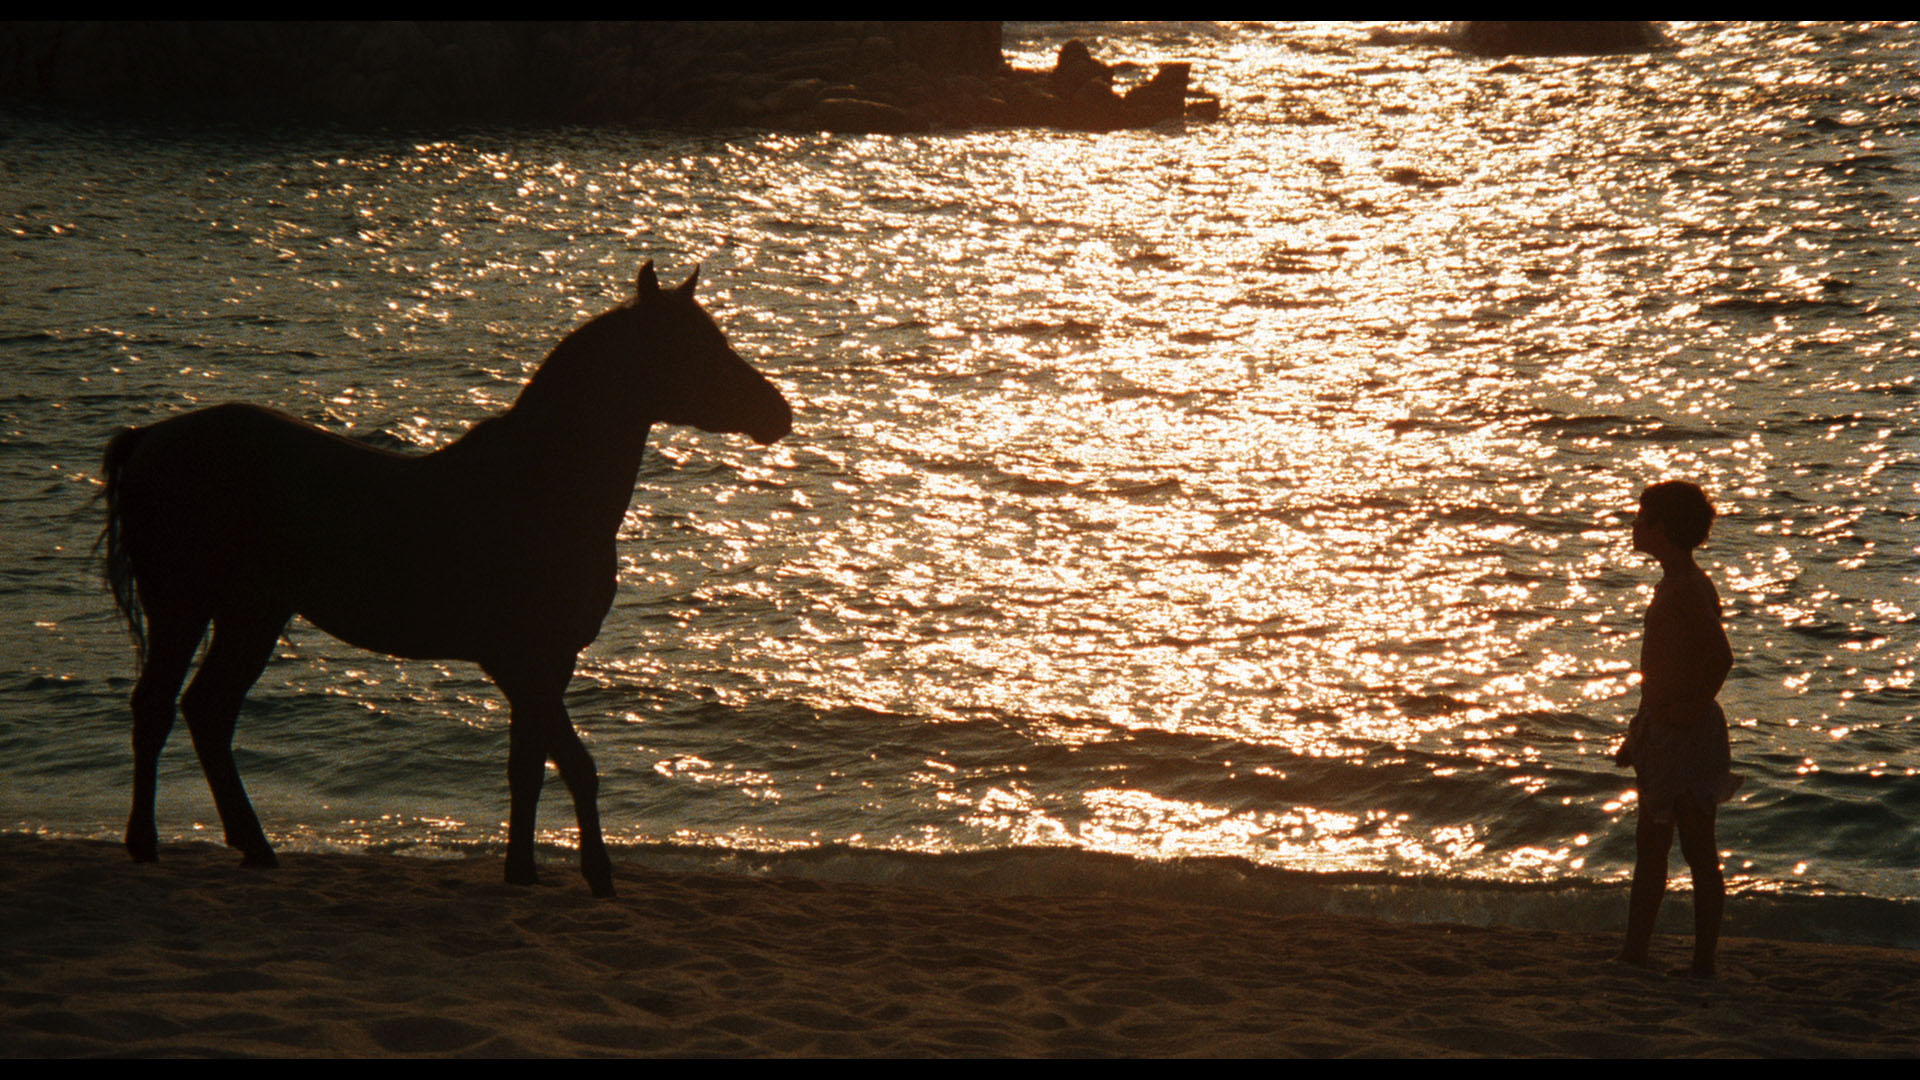 Caleb Deschanel on Shooting The Black Stallion